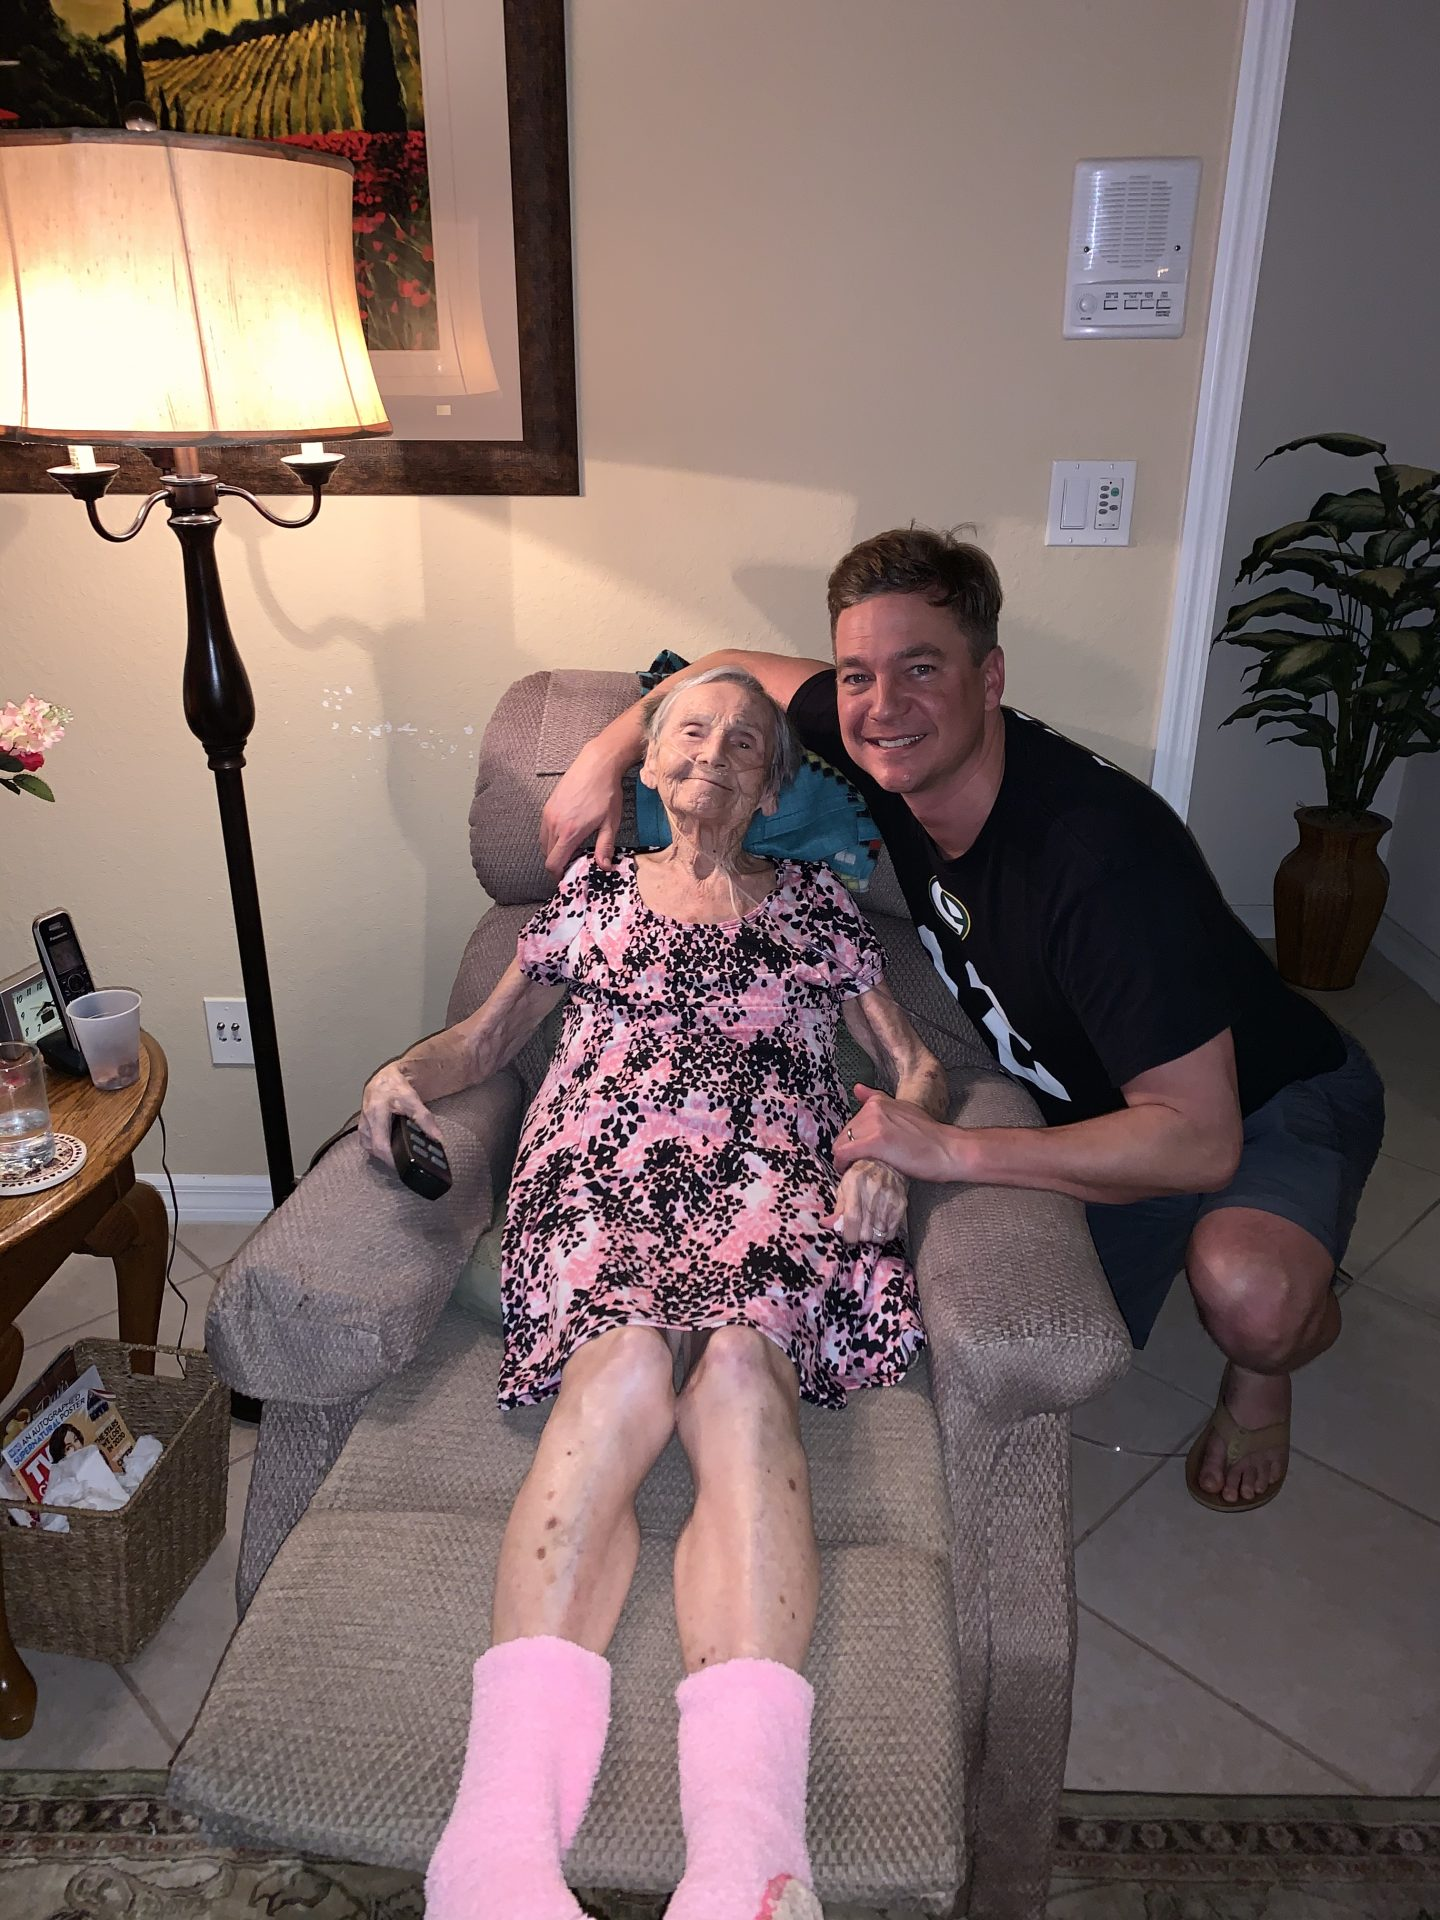 I love you Grandma, and I'm so thankful I was able to spend some time with you a few days before you left this earth and went to heaven.  I wonder what you might be doing right now, probably reuniting with family that went before you and playing cards.  :). Miss you!!